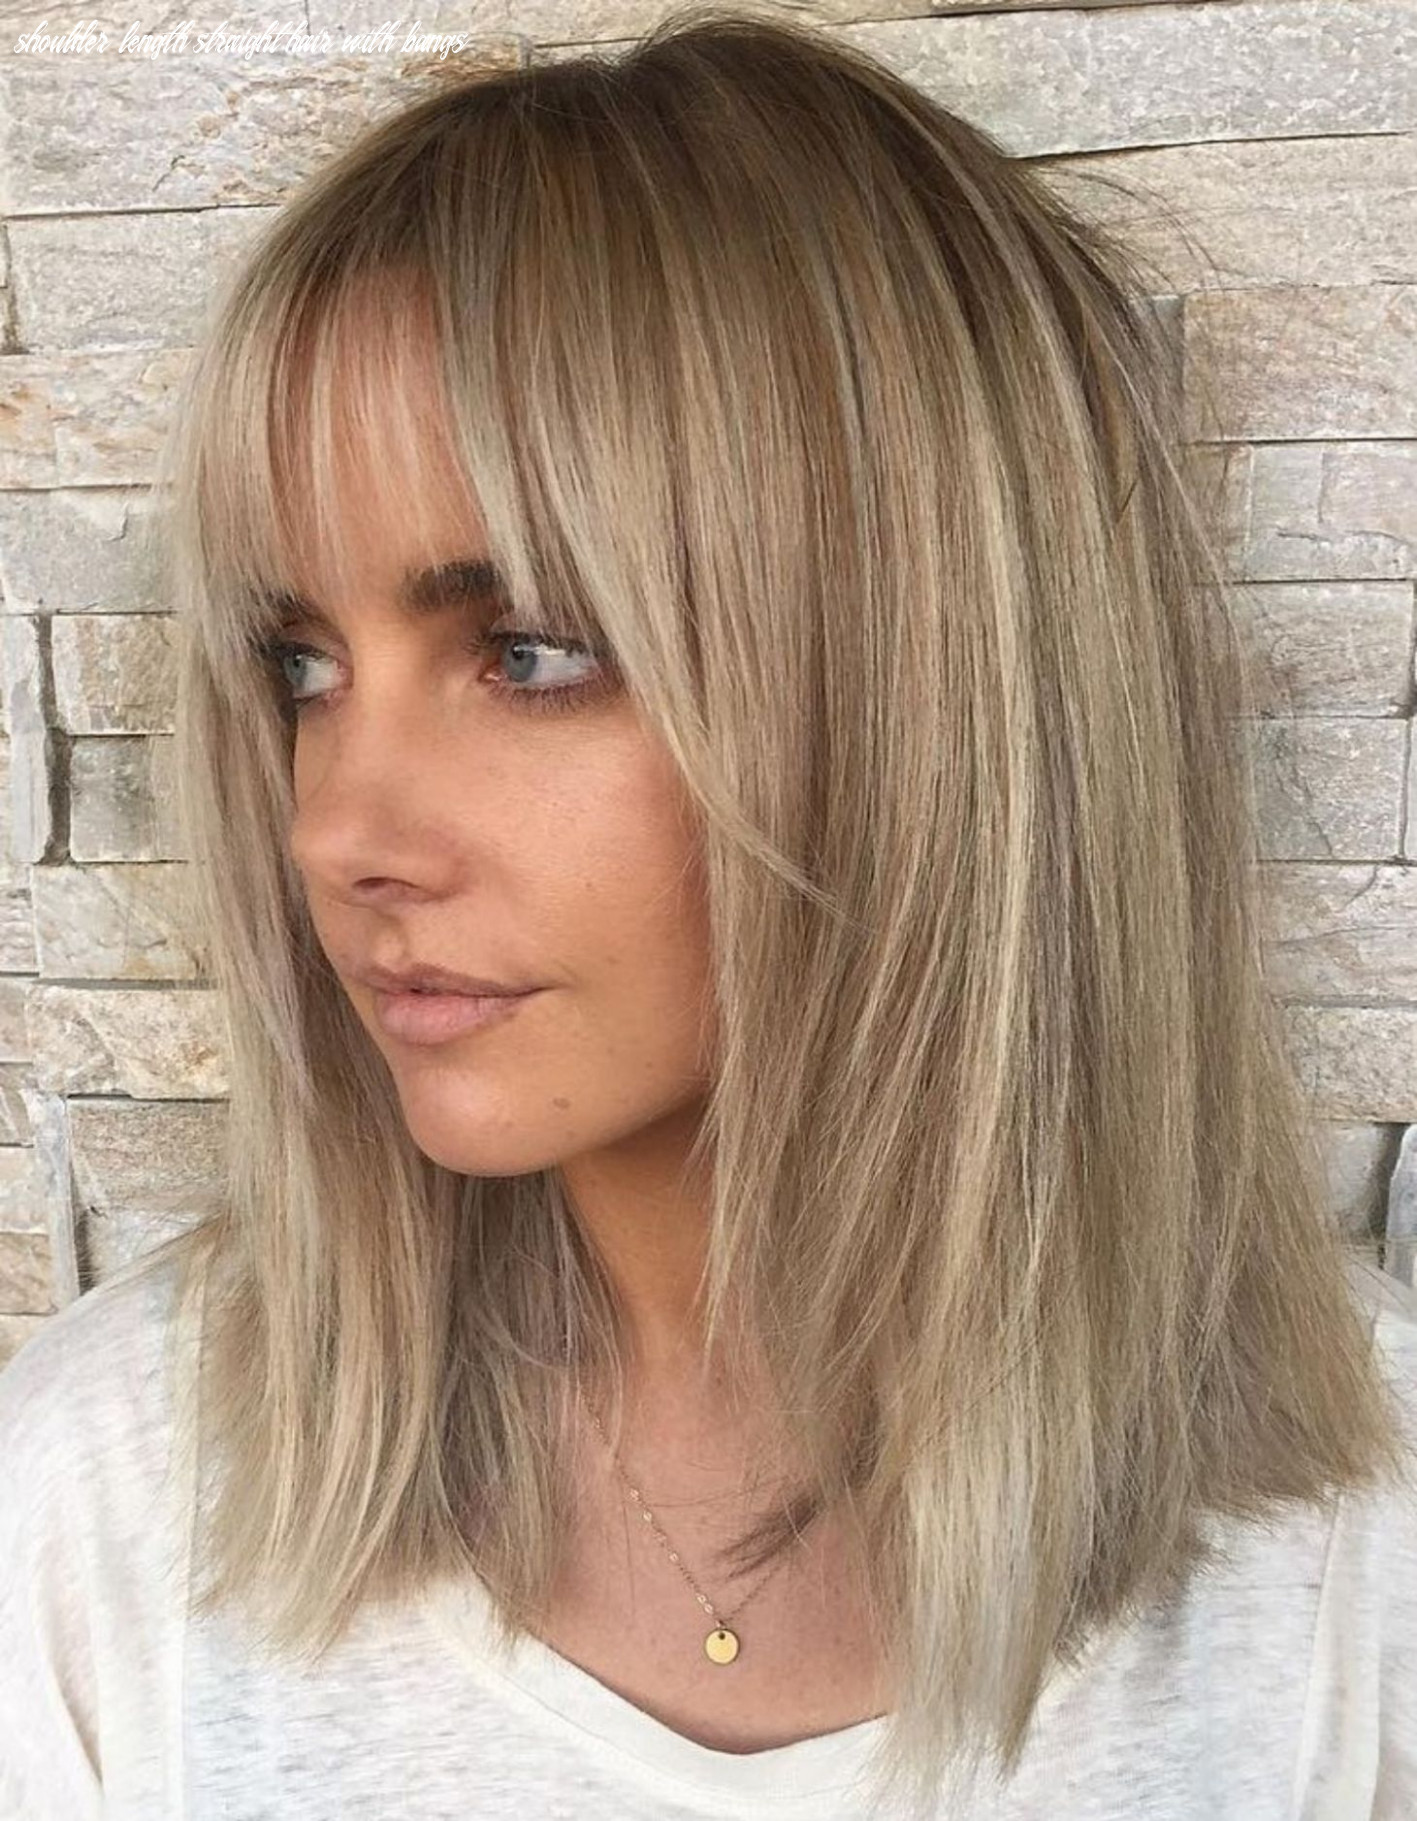 Pin on beauty | hair makeup shoulder length straight hair with bangs